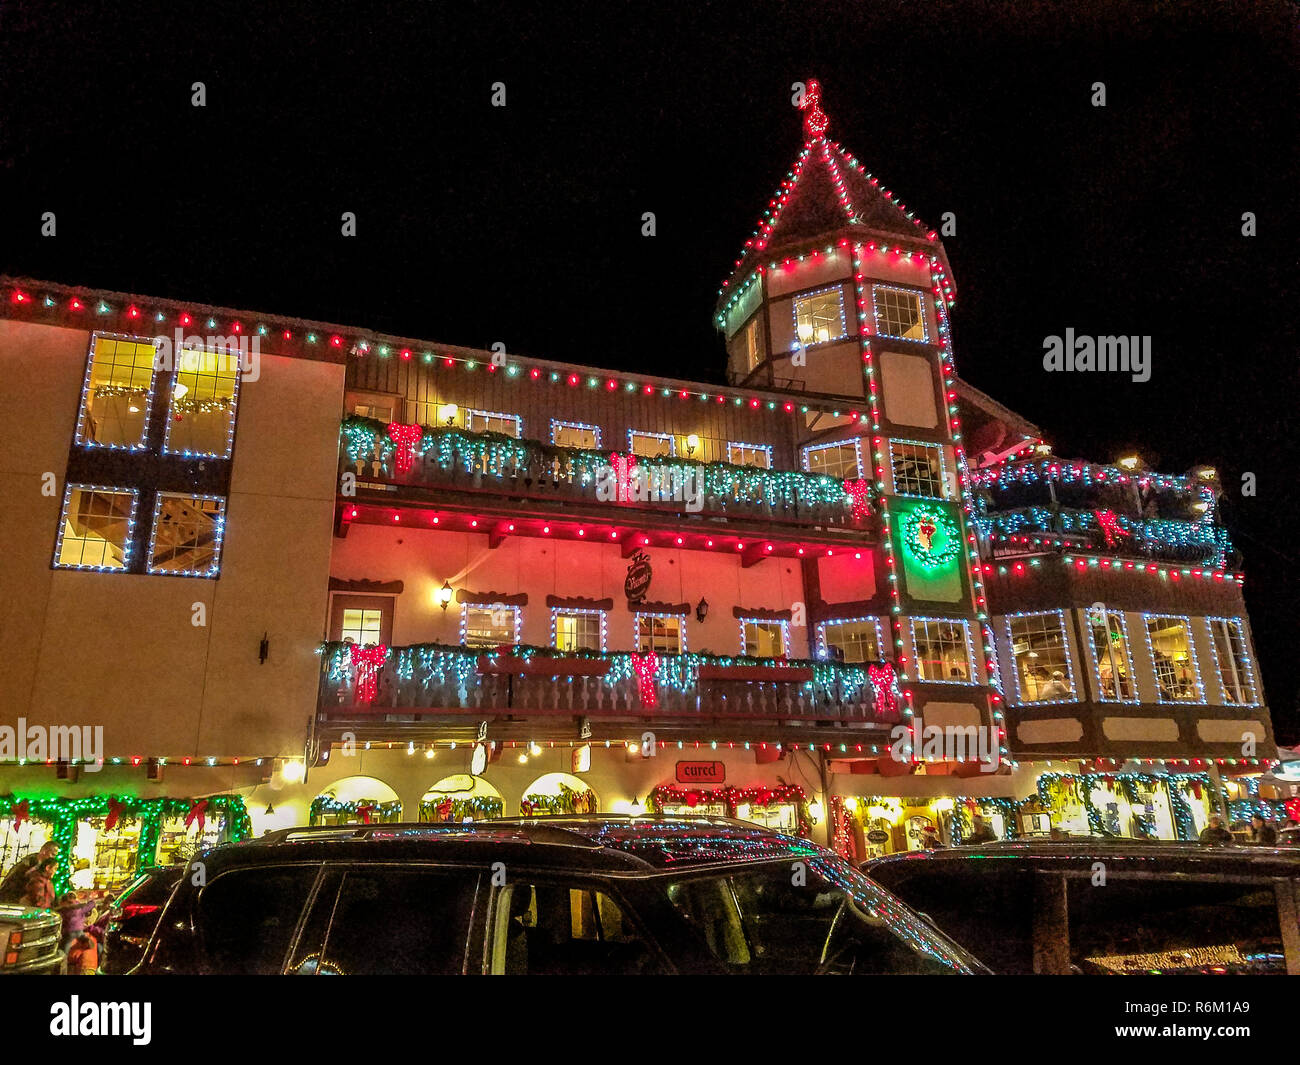 Leavenworth Christmas Lights.Christmas Lights In Leavenworth Wa Each Year The Town